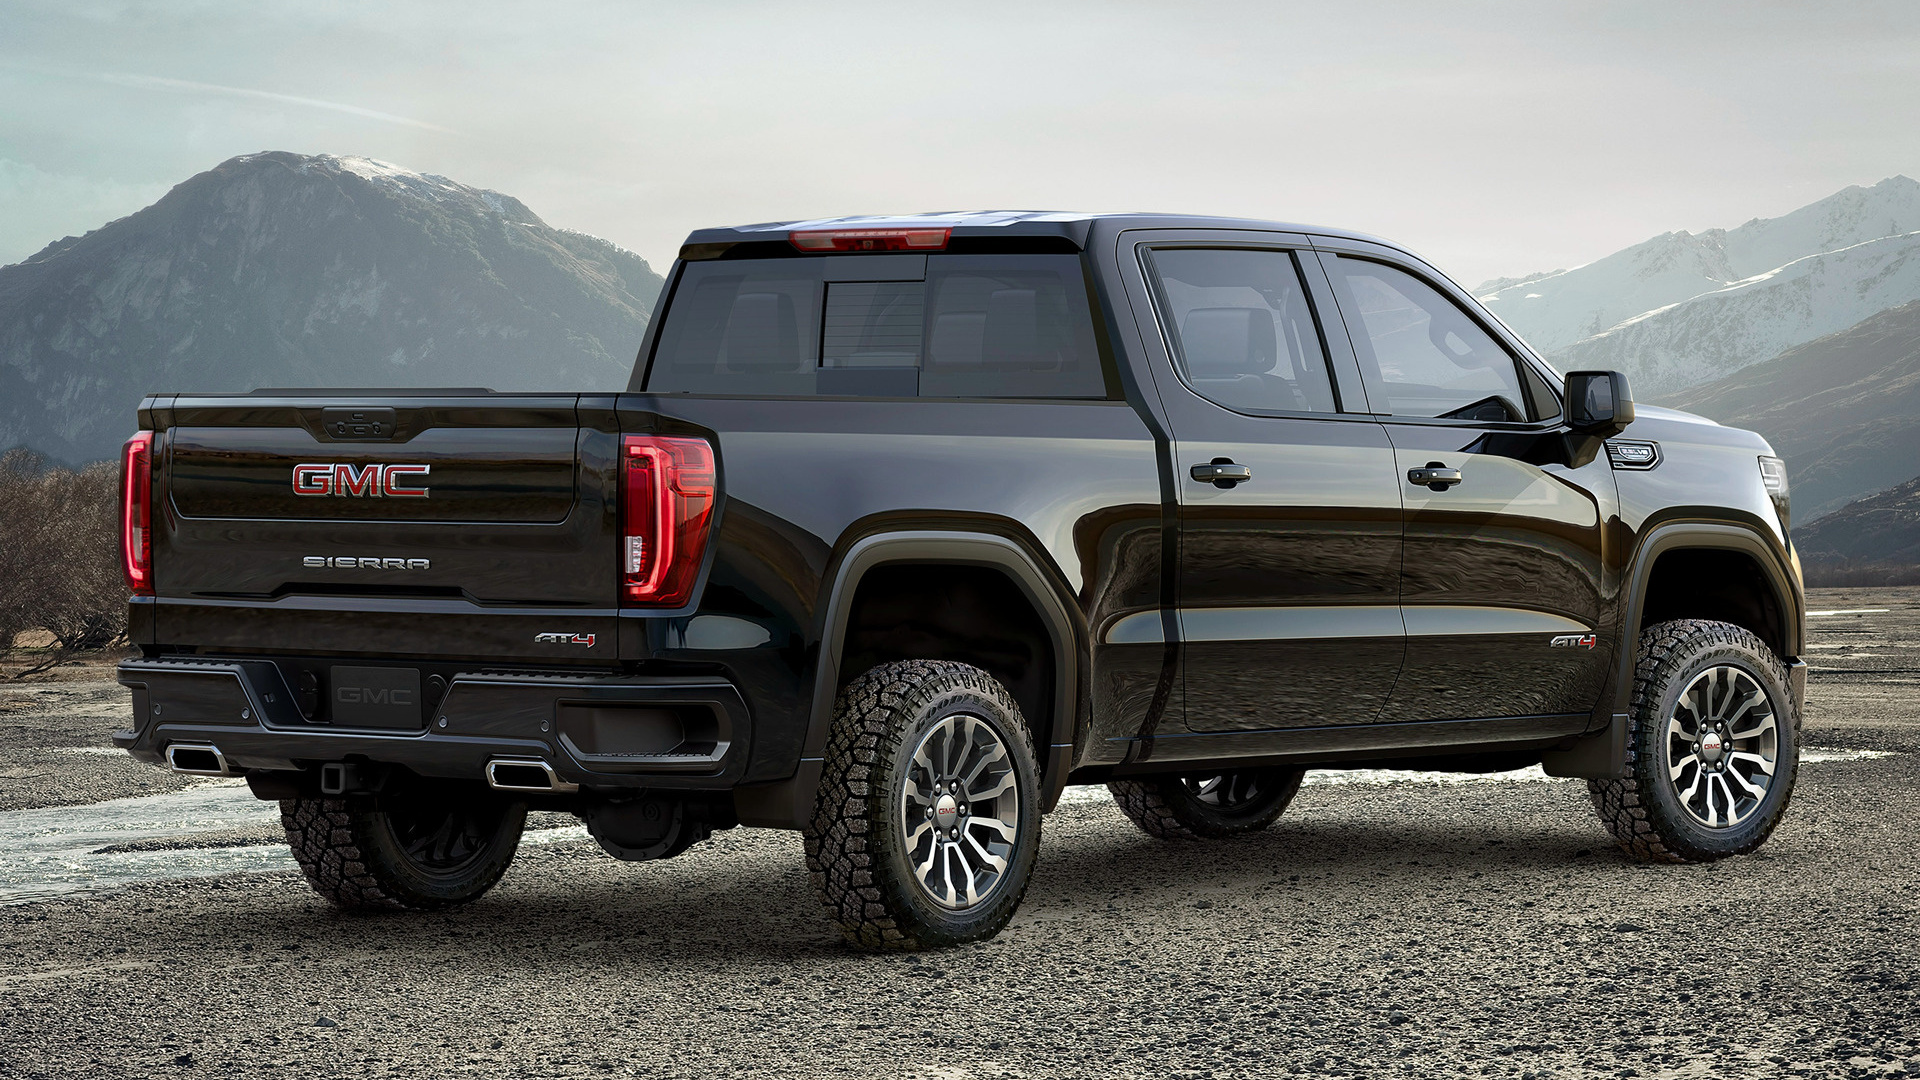 2017 Gmc Sierra Elevation >> 2019 GMC Sierra AT4 Crew Cab - Wallpapers and HD Images ...